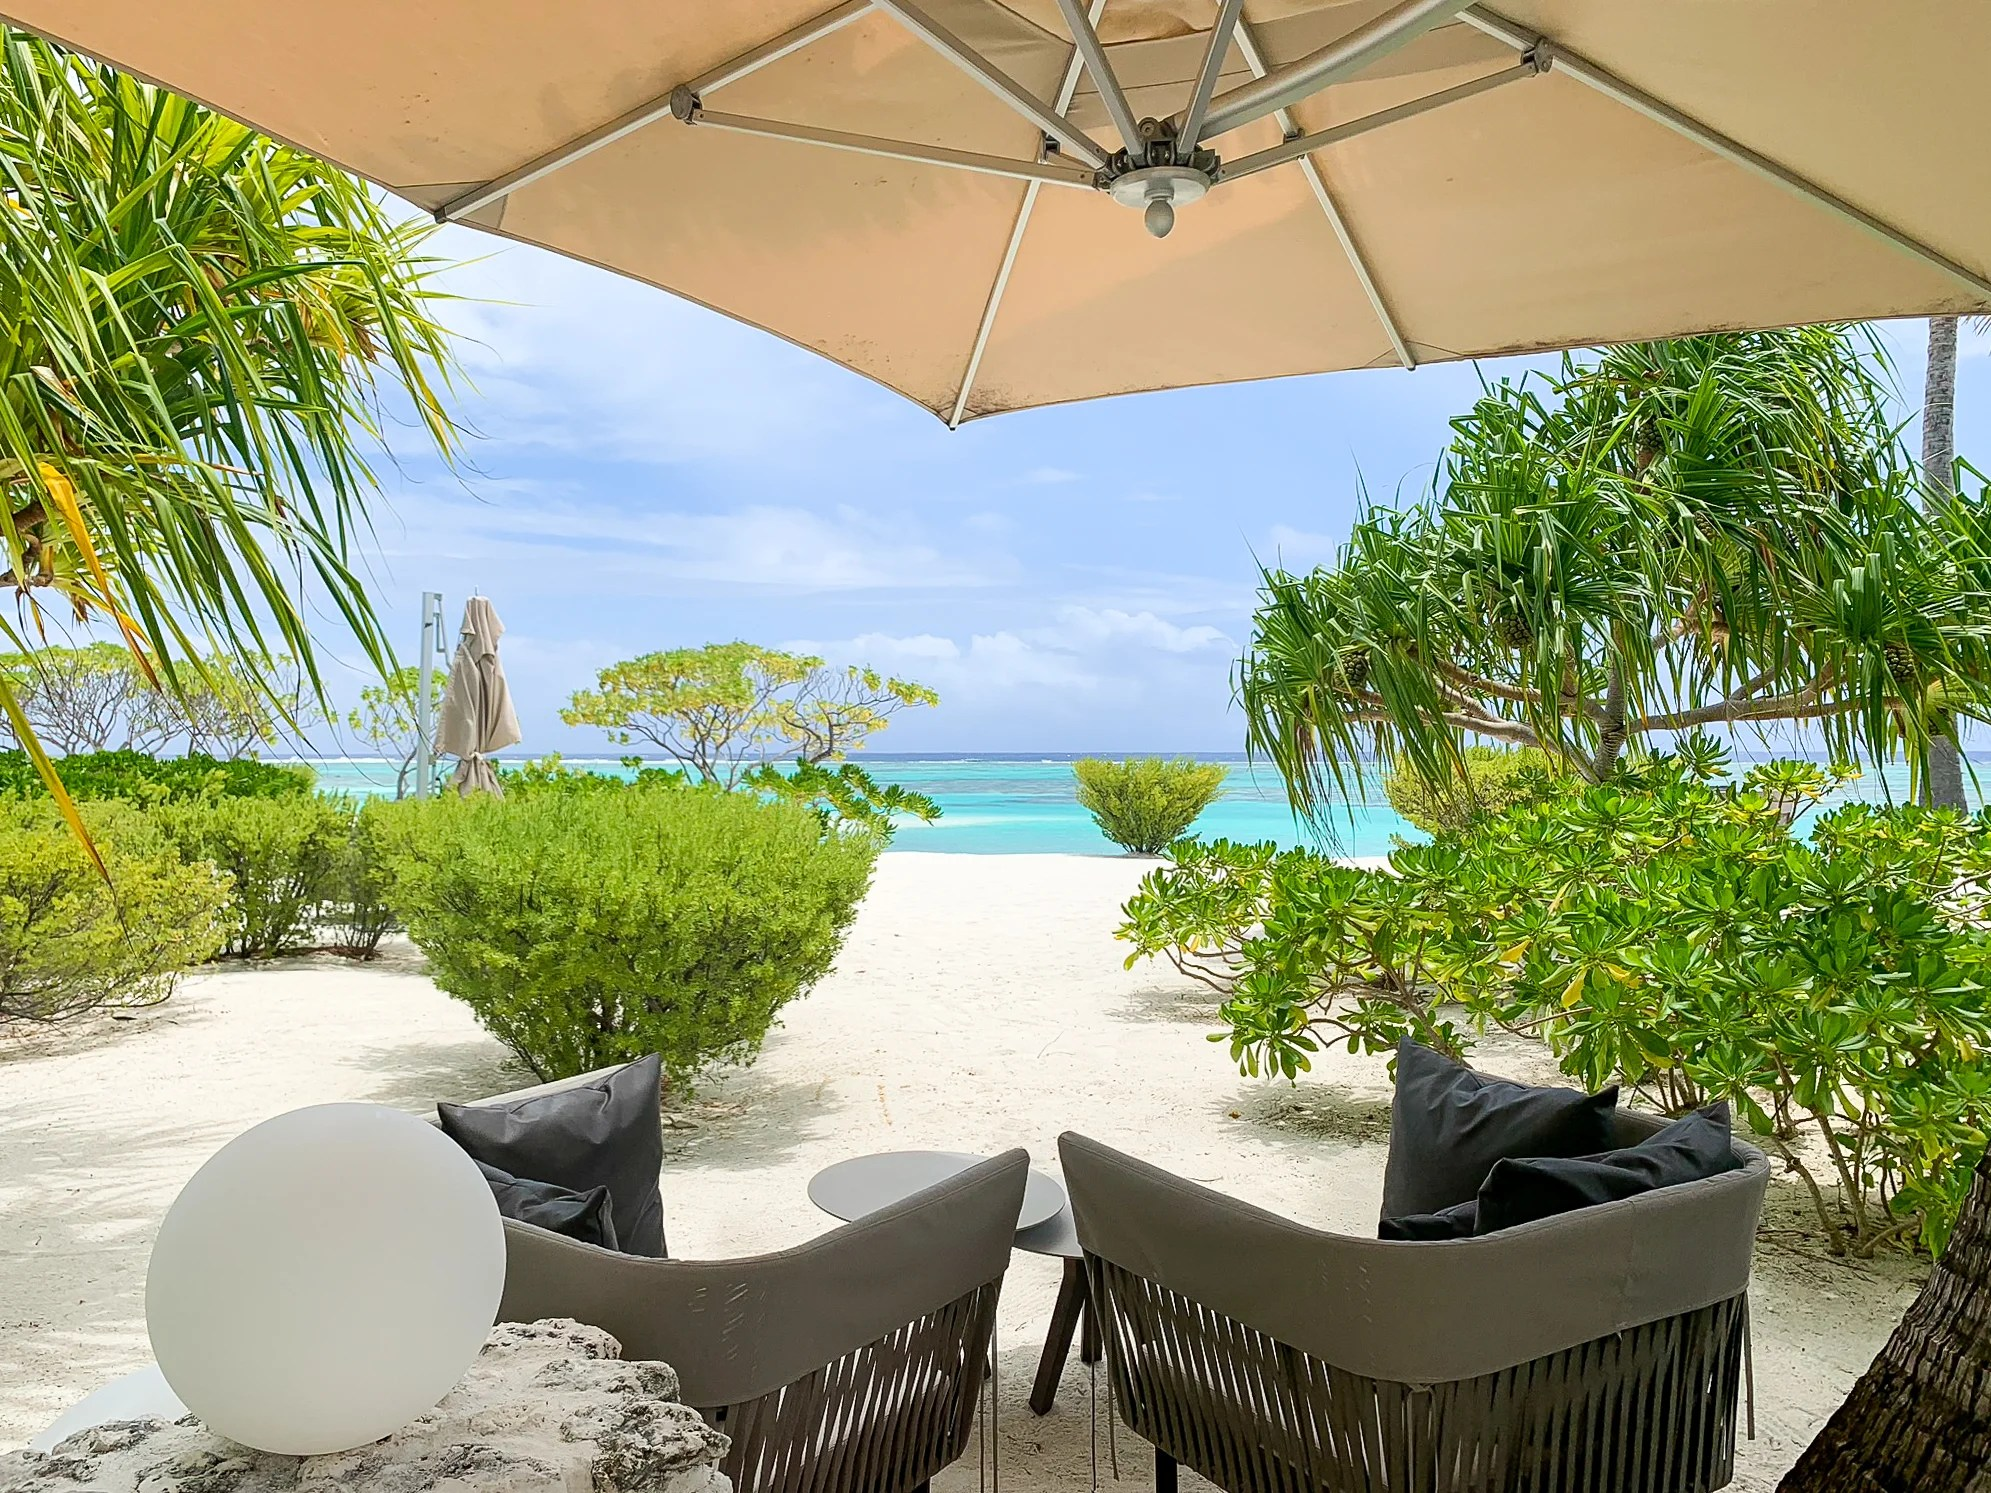 Private Island Paradise: A Review of The Brando in French Polynesia